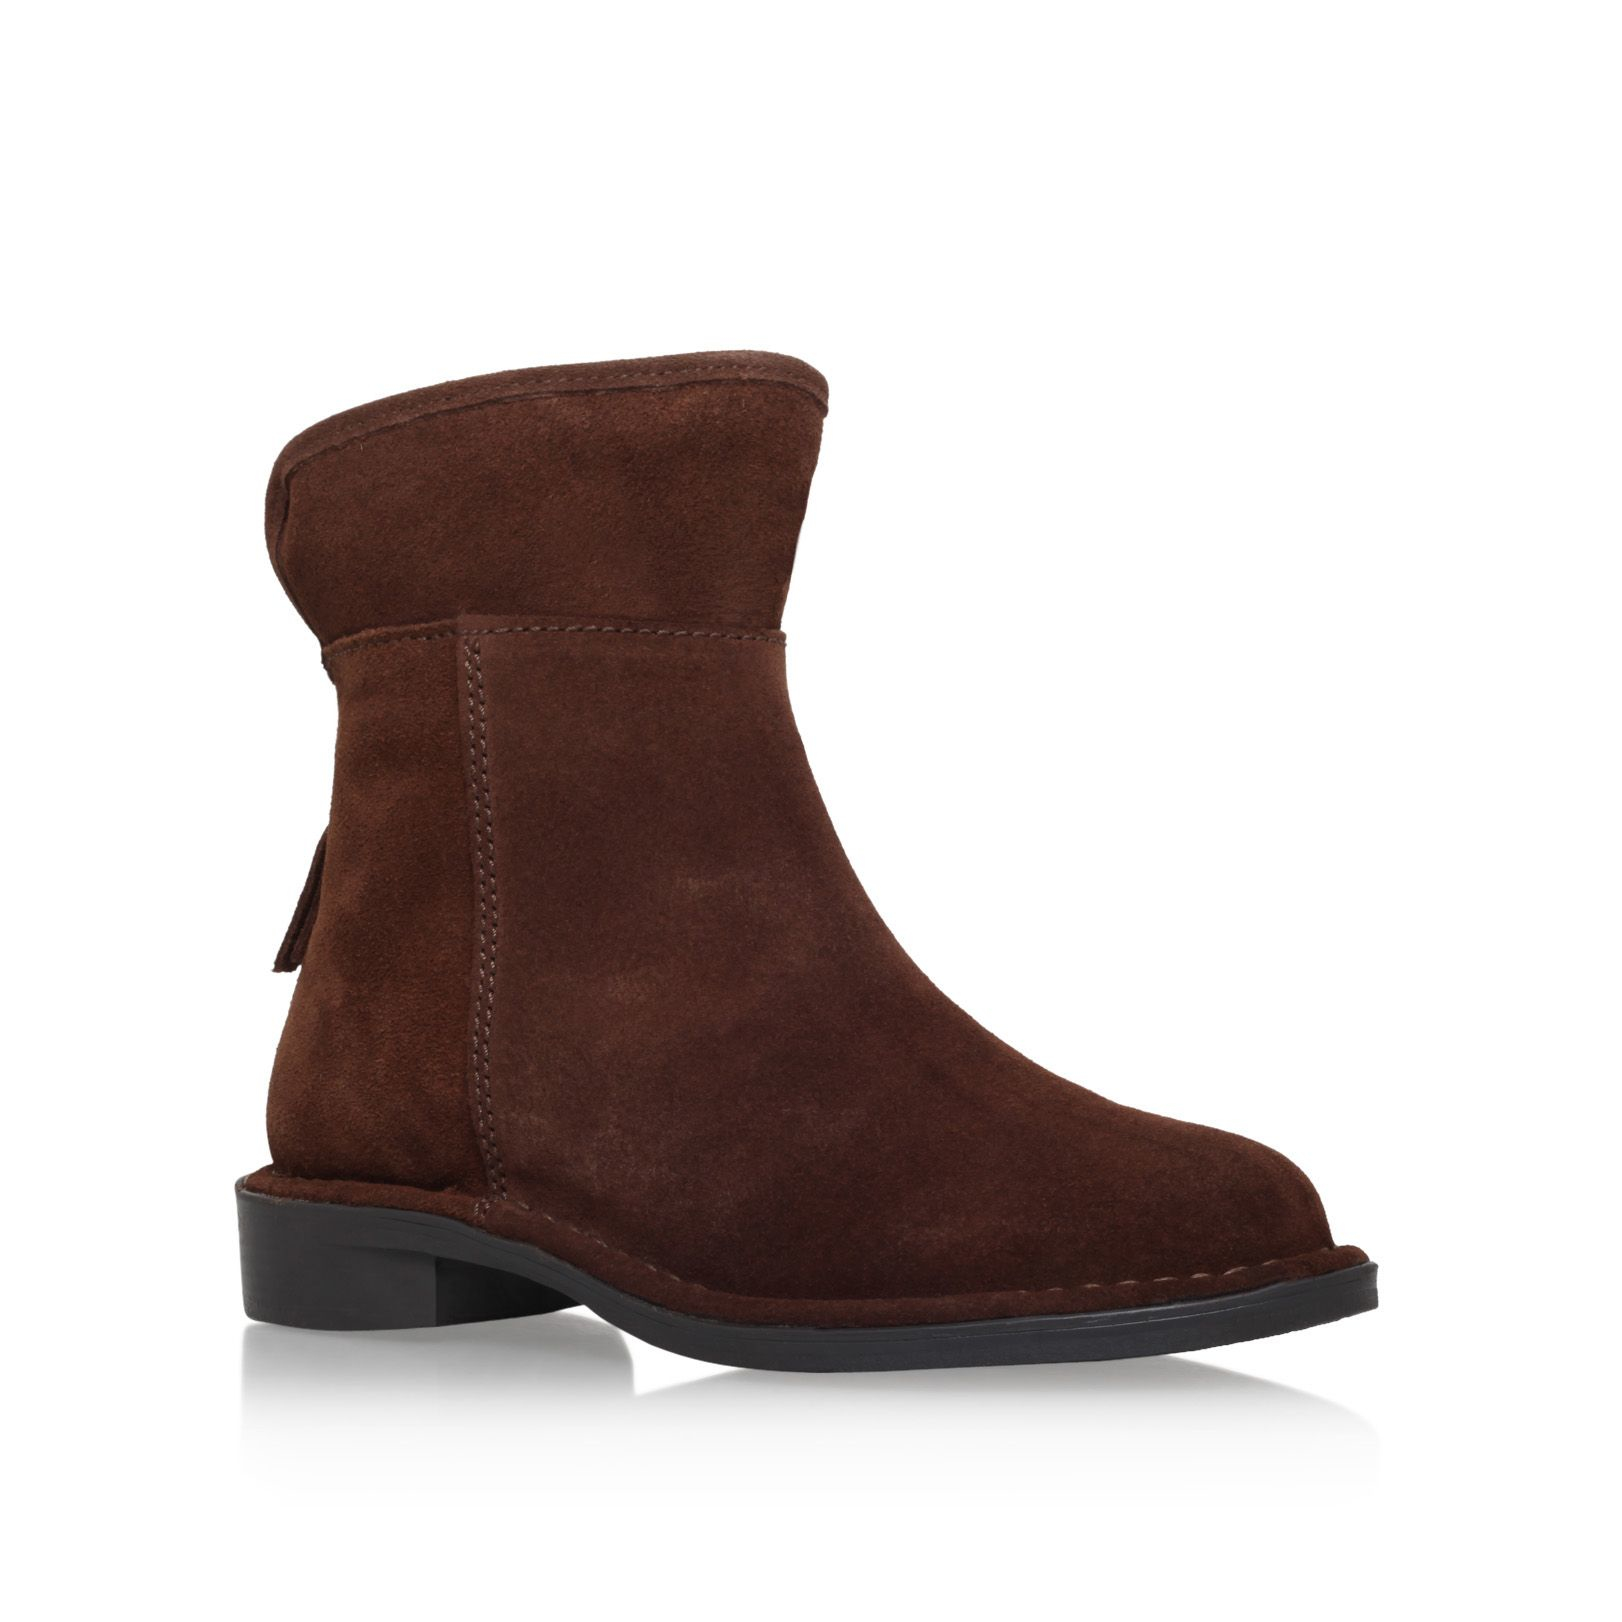 Carvela Kurt Geiger Ted Flat Ankle Boots In Brown | Lyst